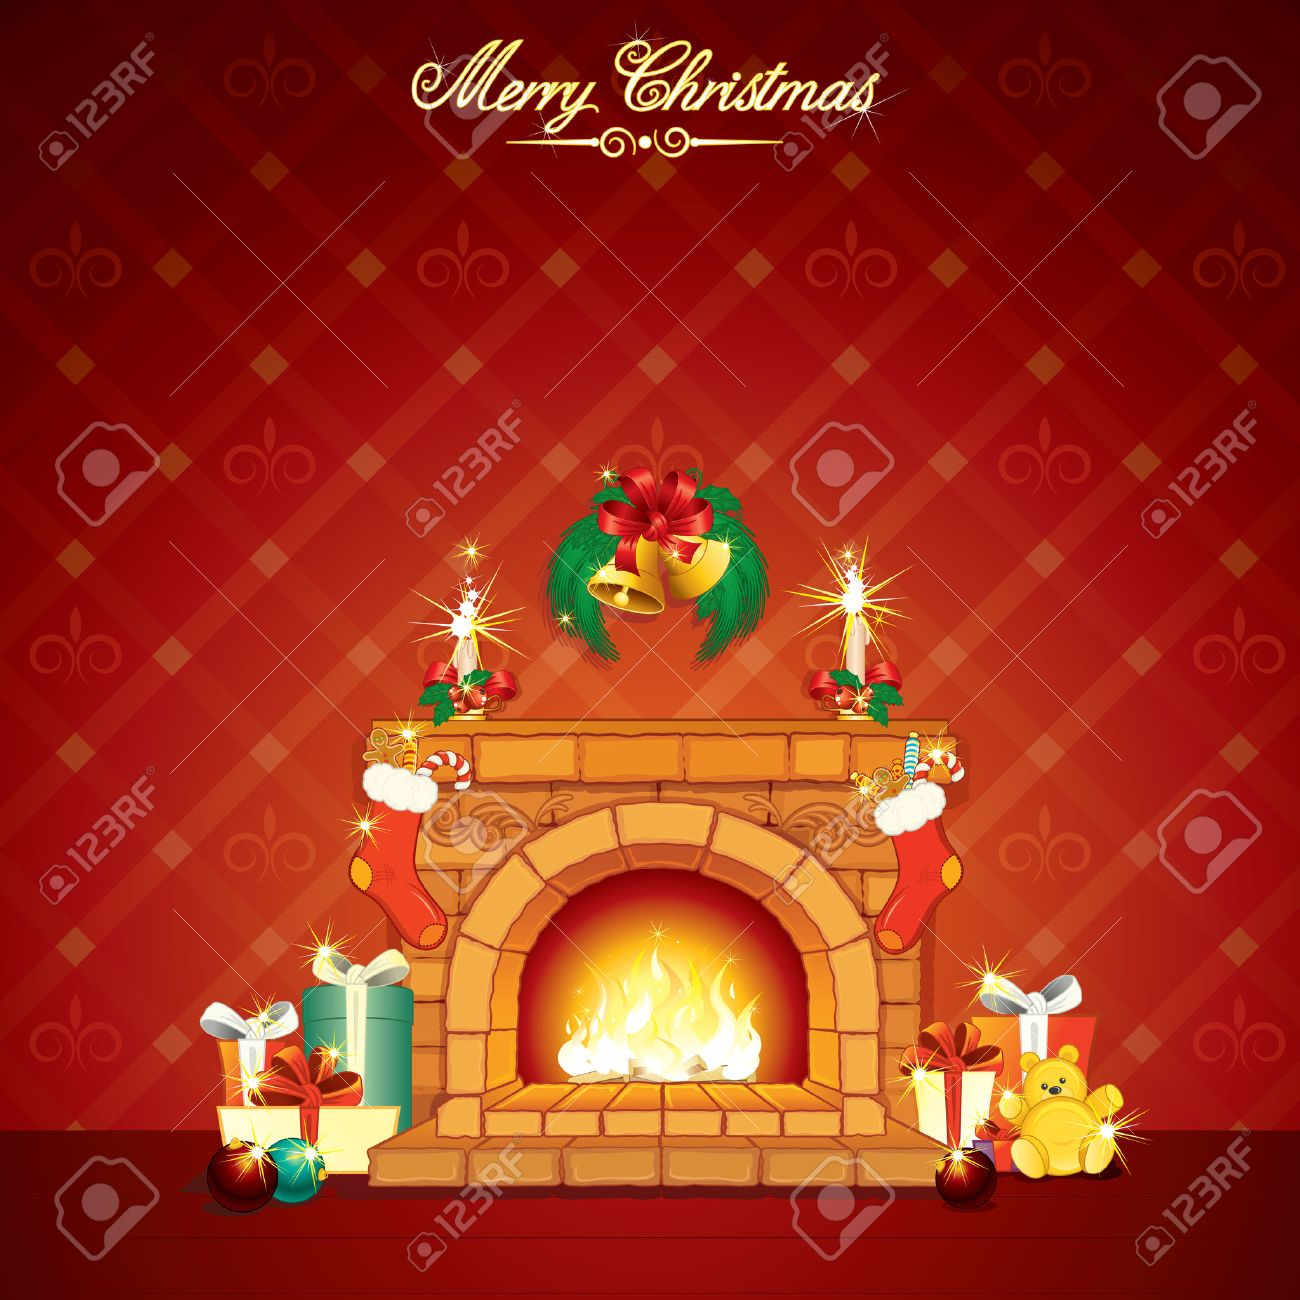 wonderful cartoon christmas interior with fireplace and